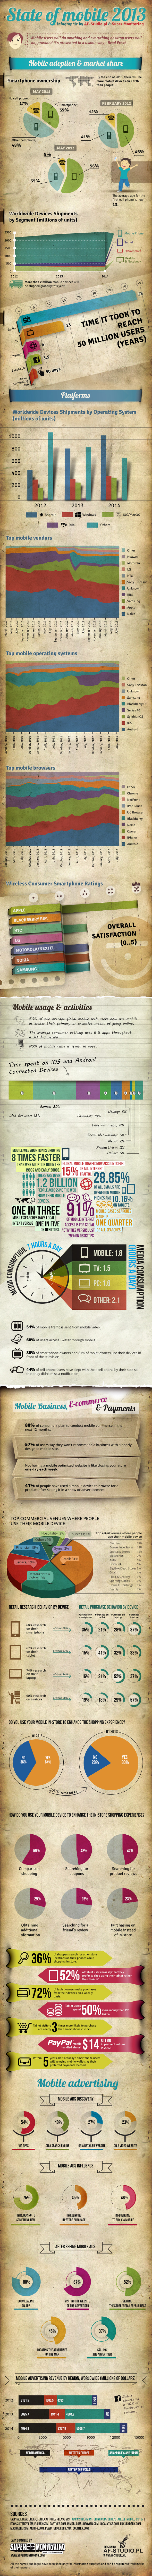 The Stunning State Of Mobile 2013 (Infographic) - viralblog.com